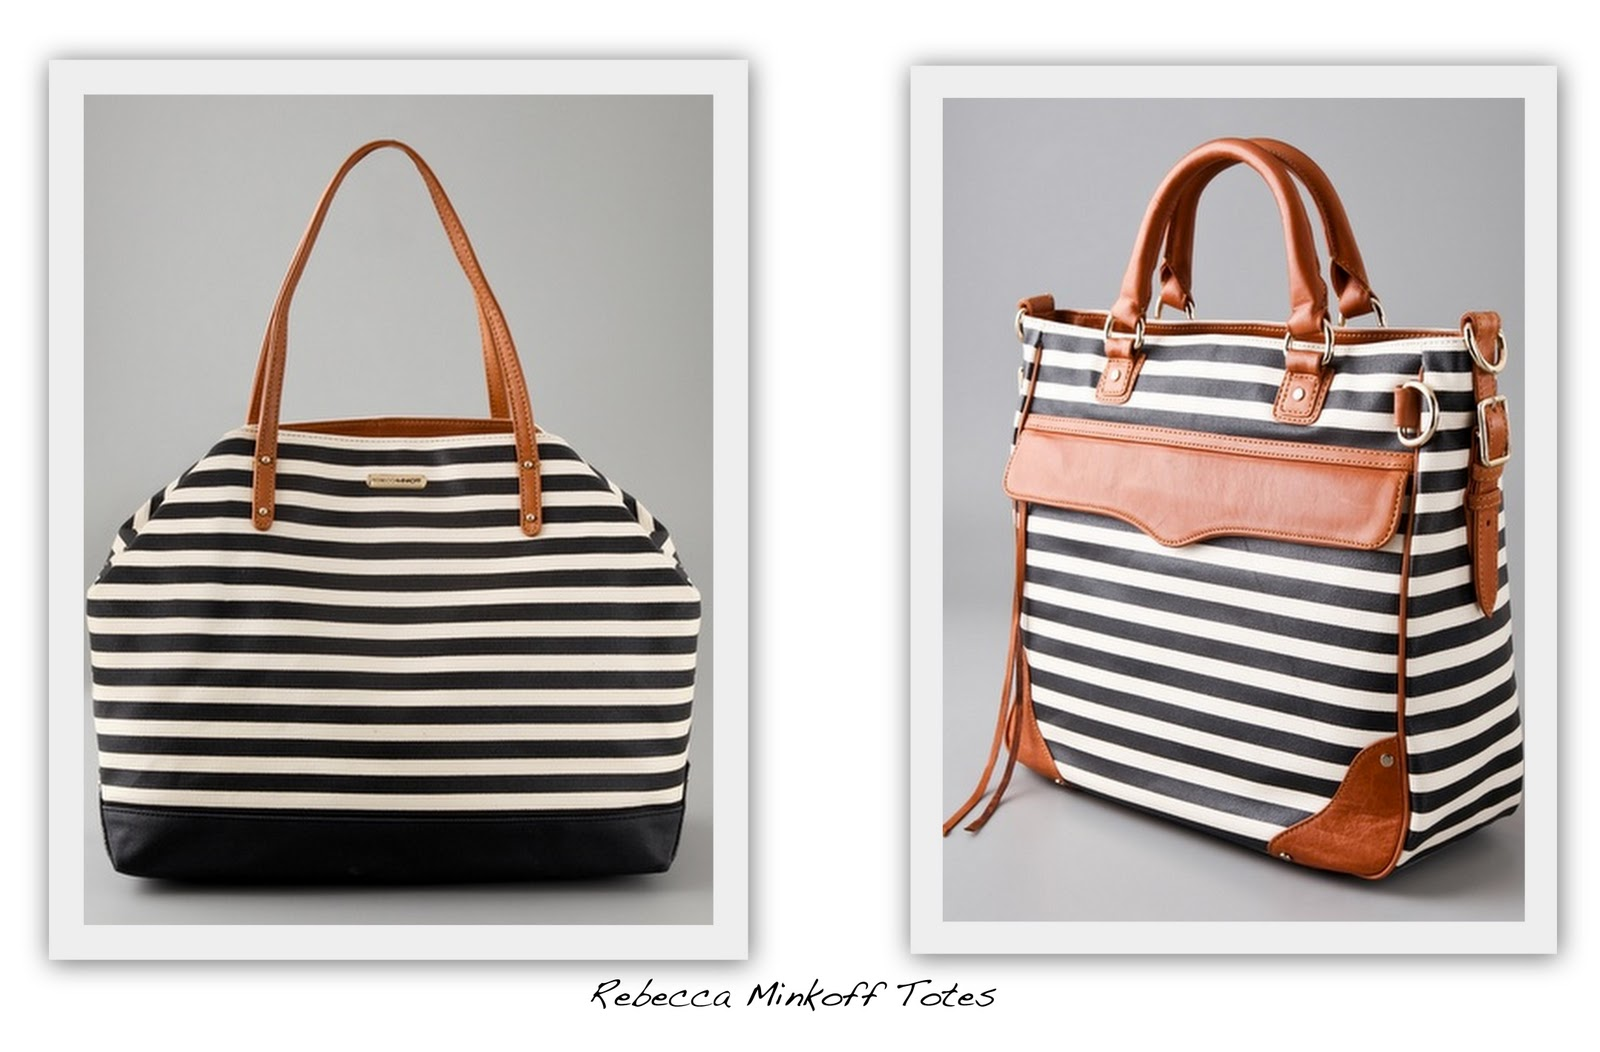 The Striped Bag